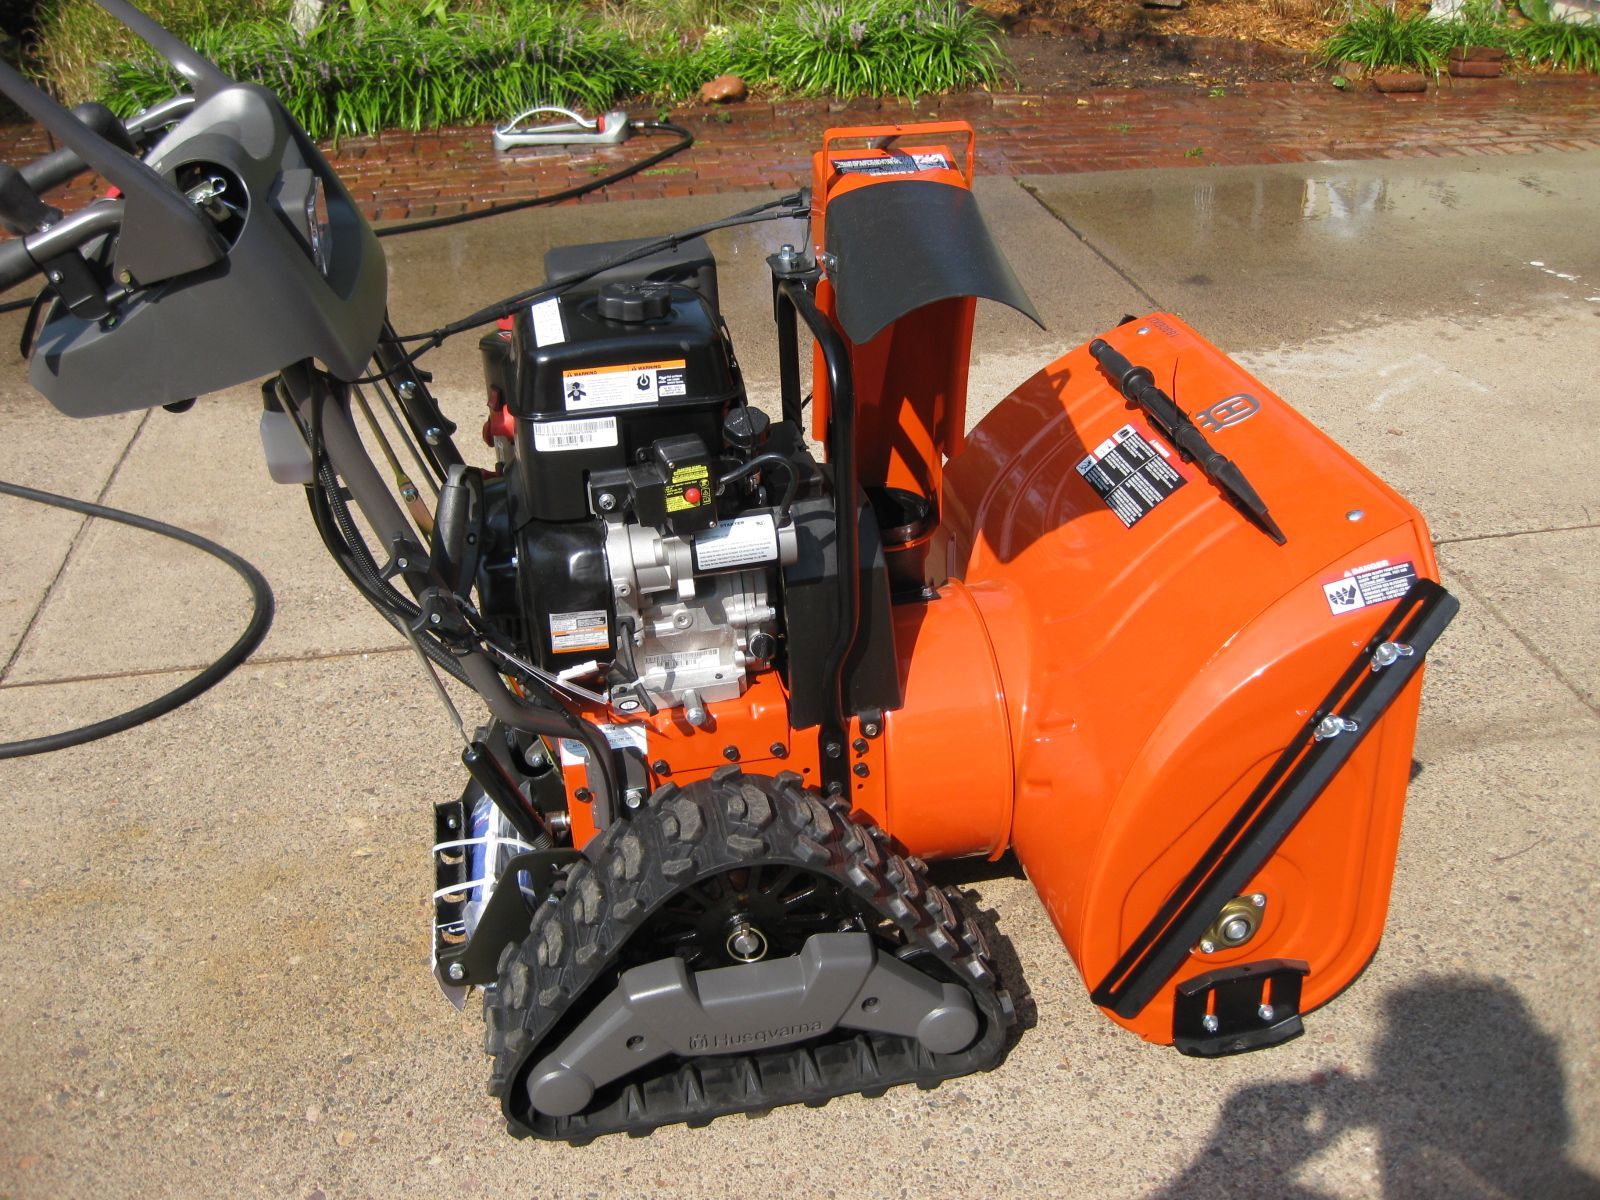 Husqvarna Lawn Tractor Snow : Husqvarna exlt review read all about this deluxe snow